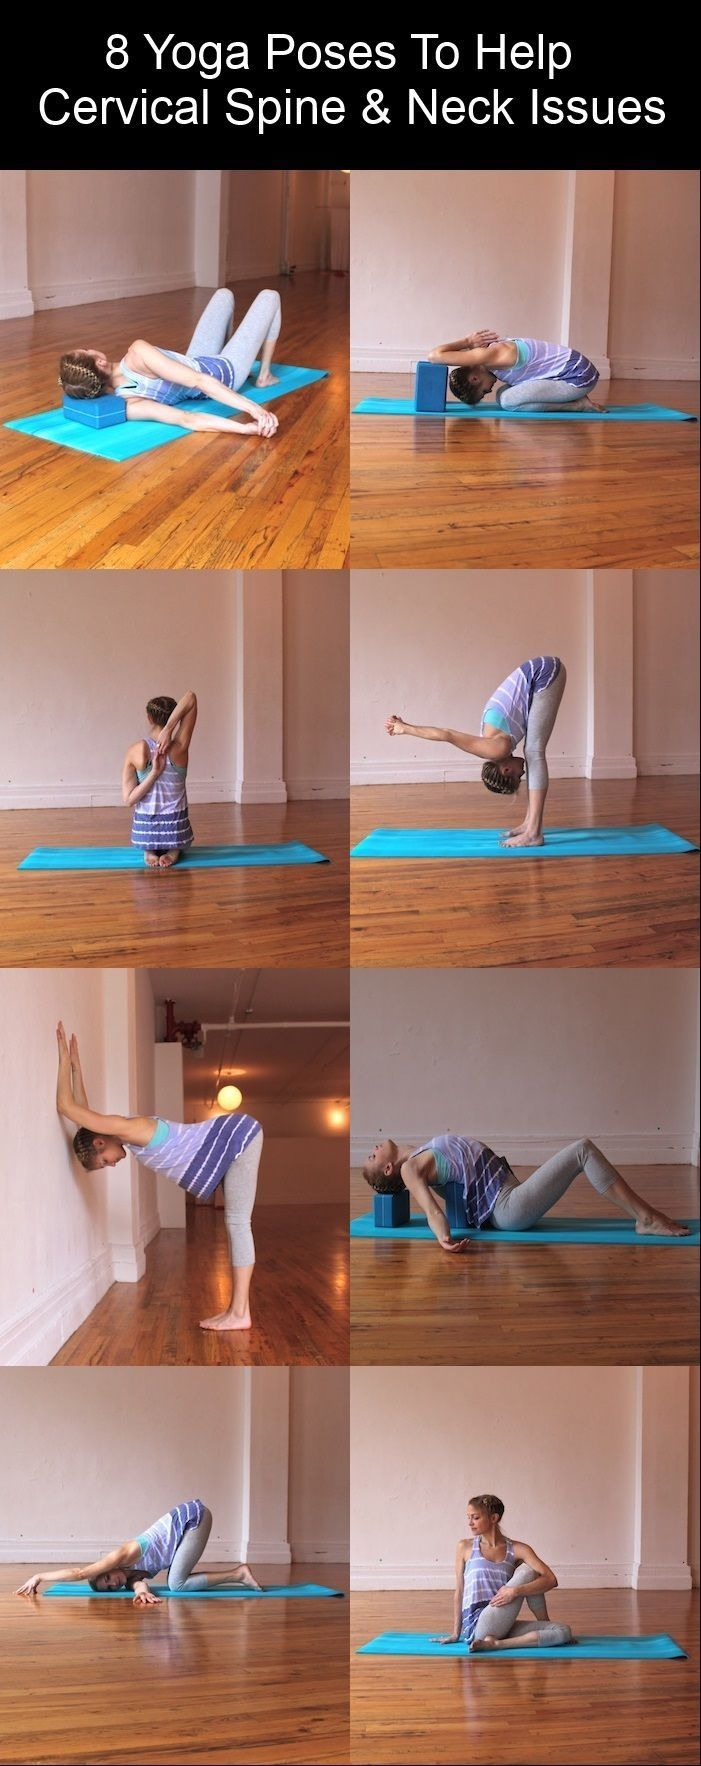 8 Yoga Poses For Spine and Neck